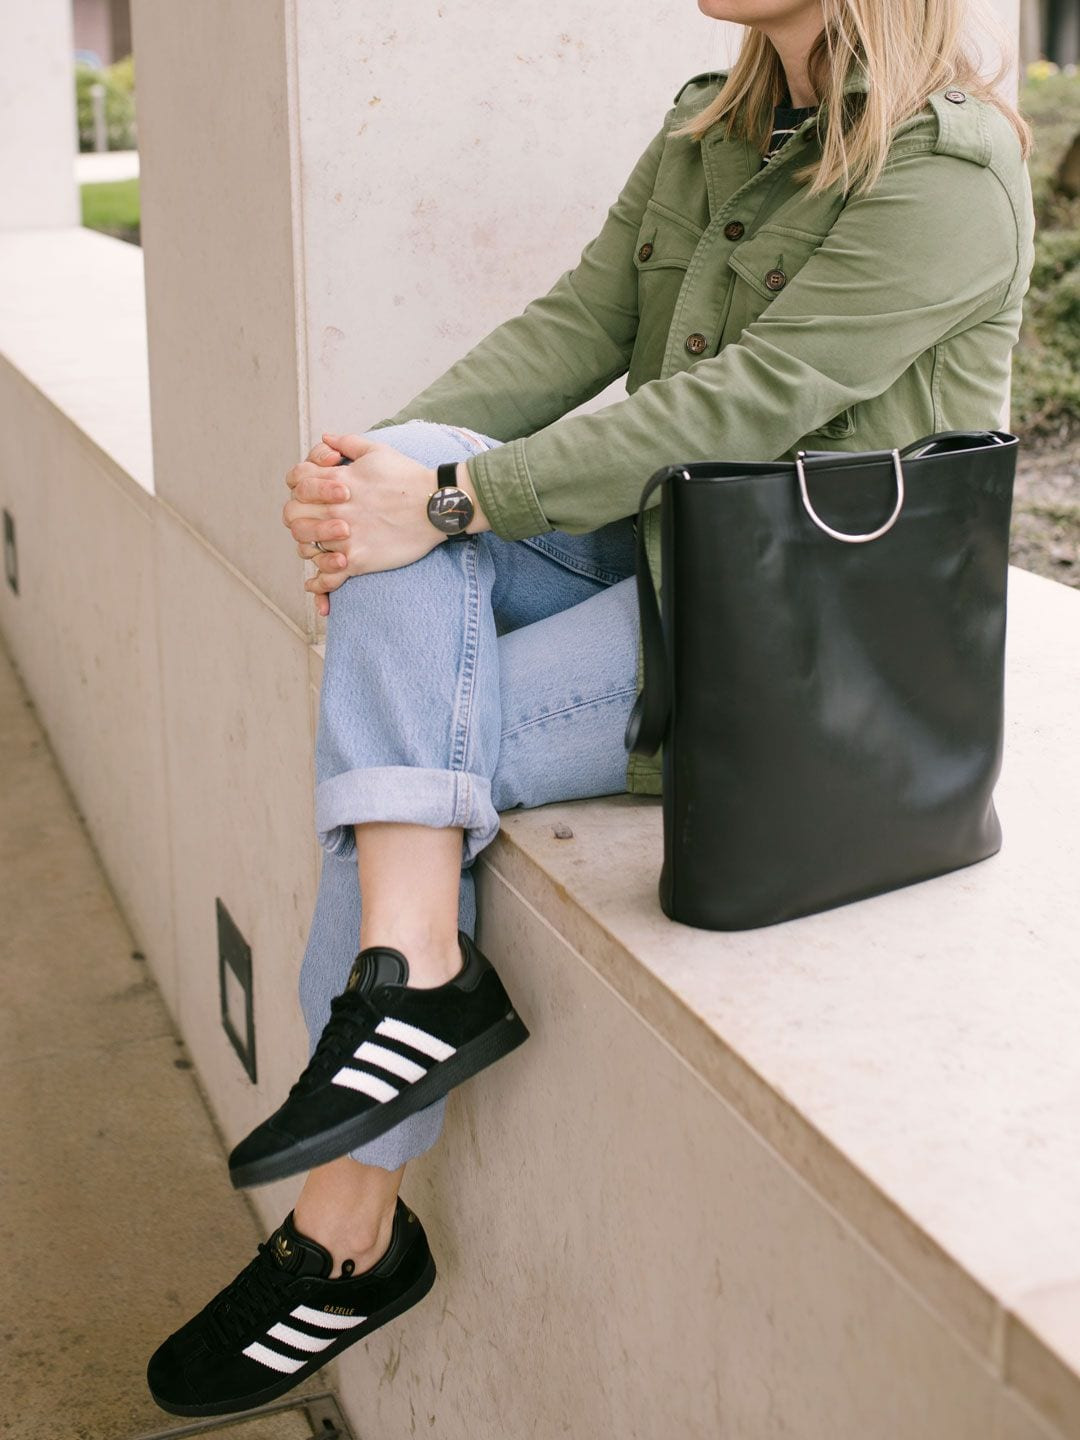 Baukjen Cargo Jacket, Vintage Levis, Adidas Gazelles, Great Plains Stripe T-shirt, & PB 0110 Bag